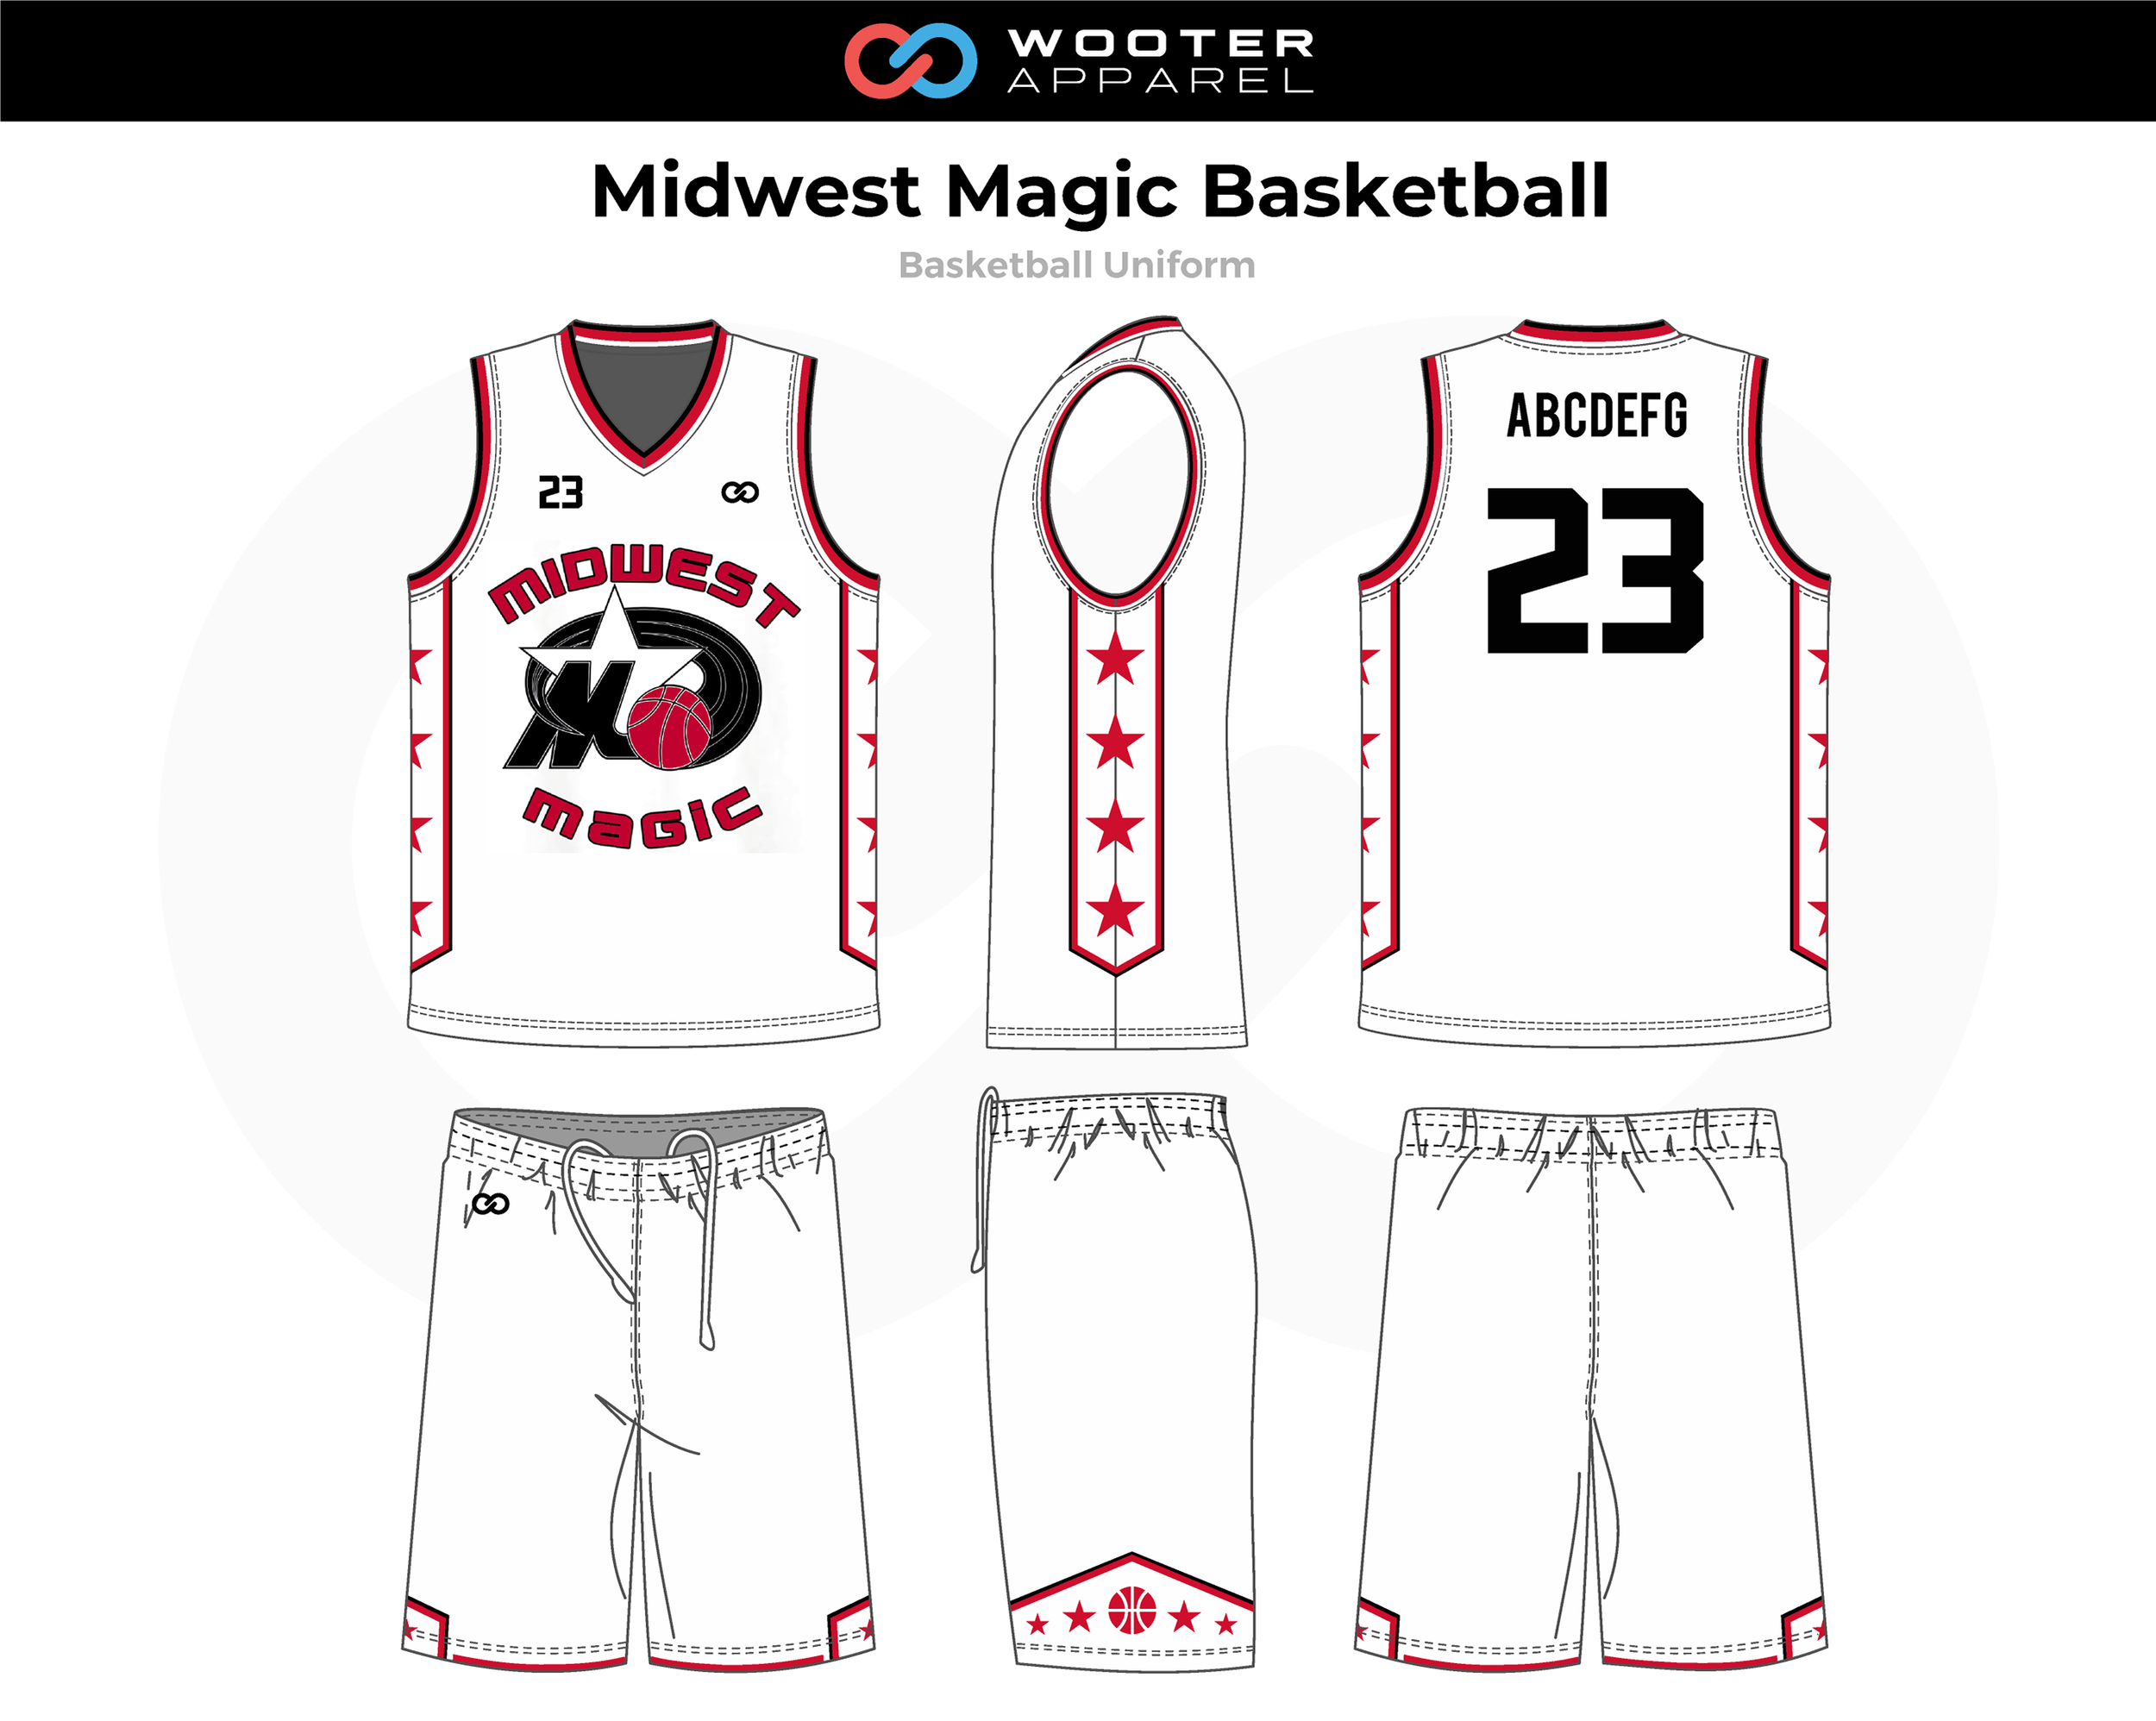 MIDWEST MAGIC Black Red White Basketball Uniform, Jersey and Shorts